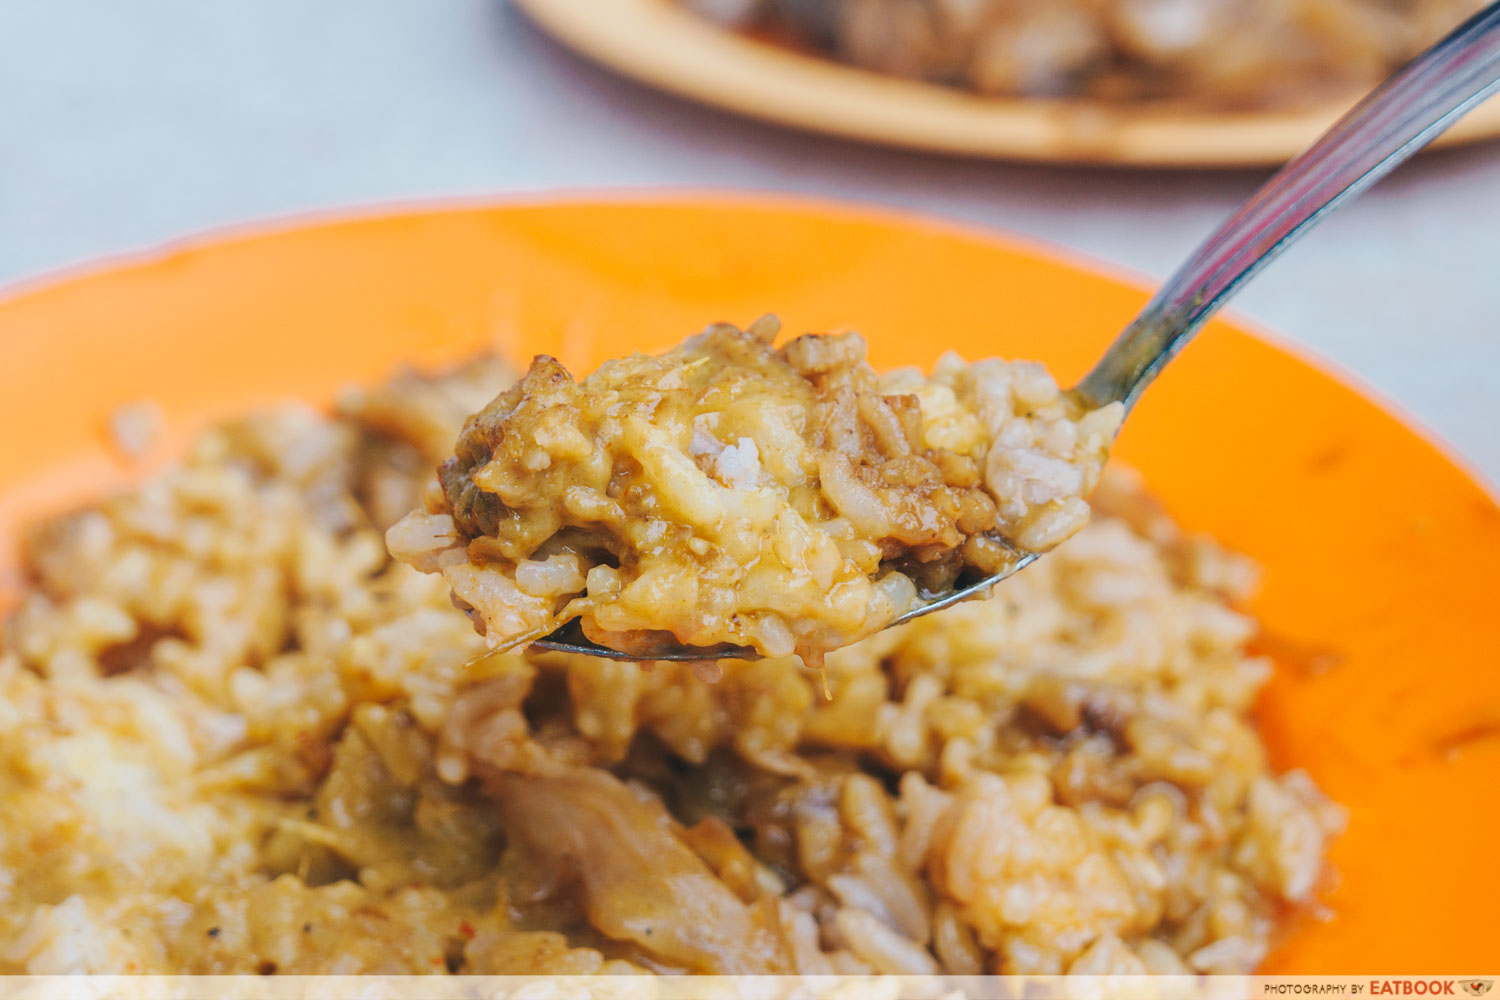 Loo's Hainanese Curry Rice - Spoonful of curry rice